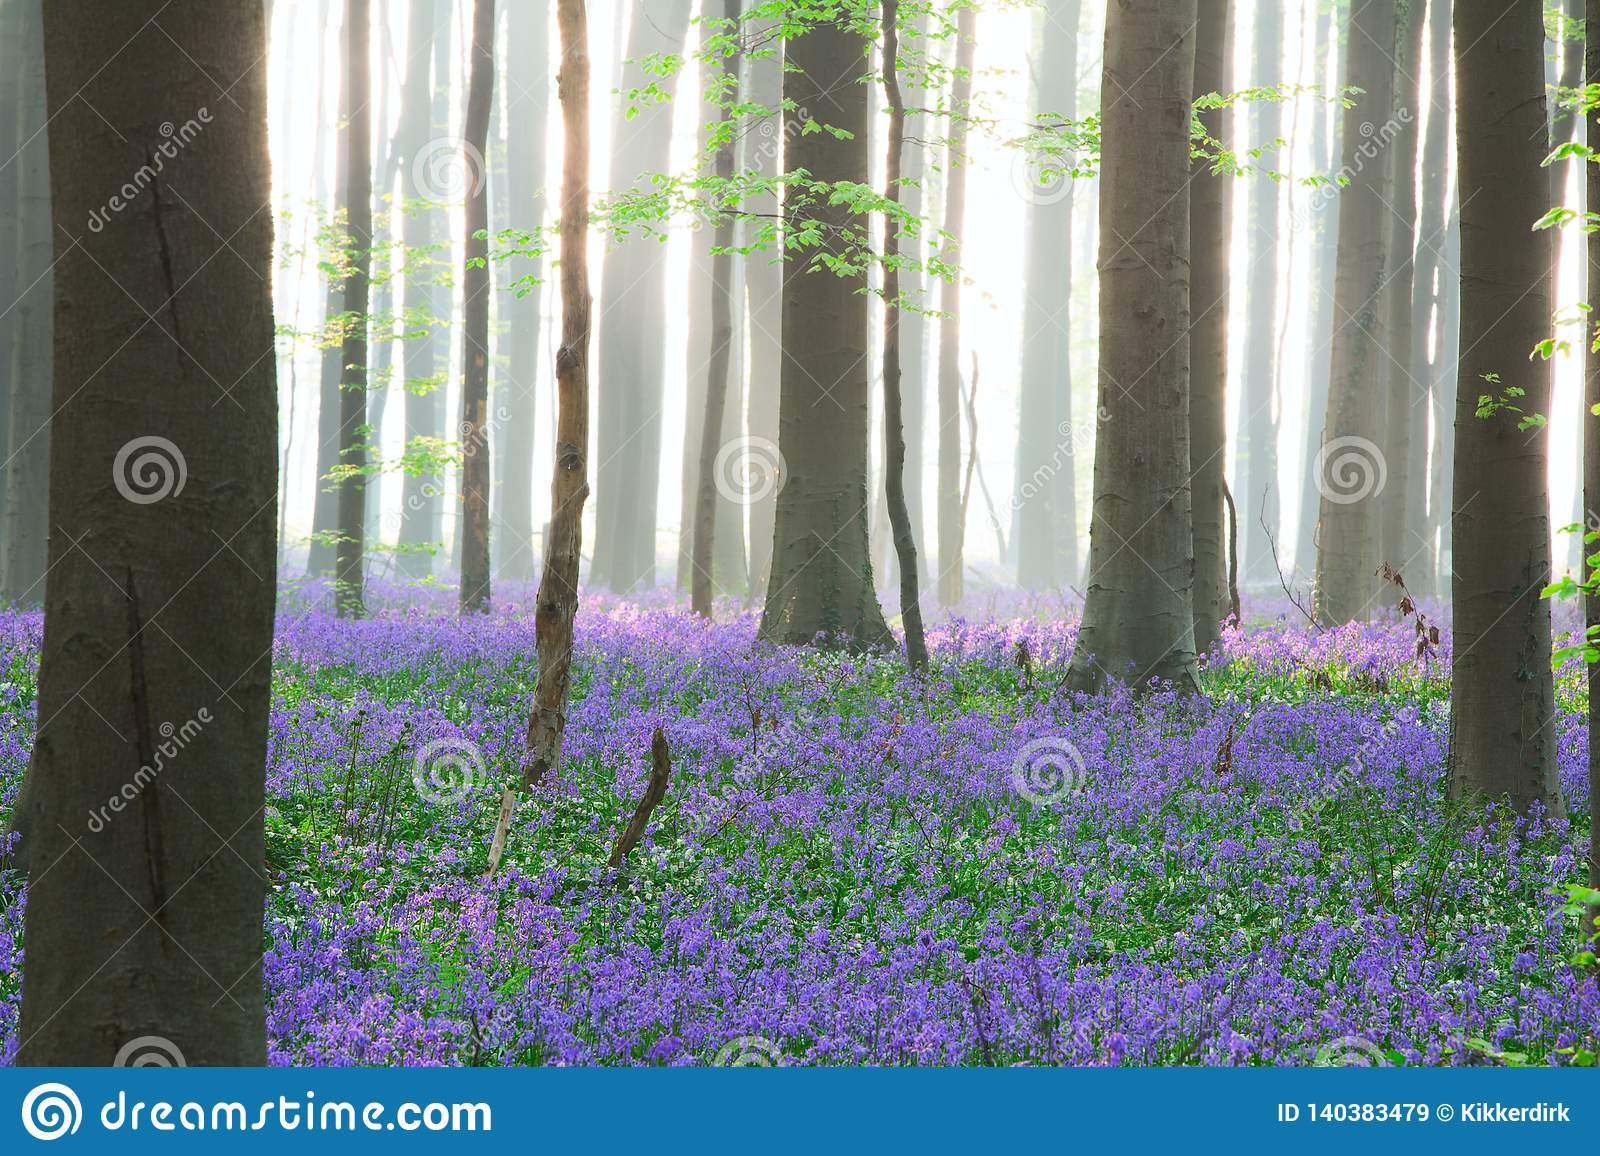 Enchanted pristine spring beech forest with a wild flower carpet of bluebells